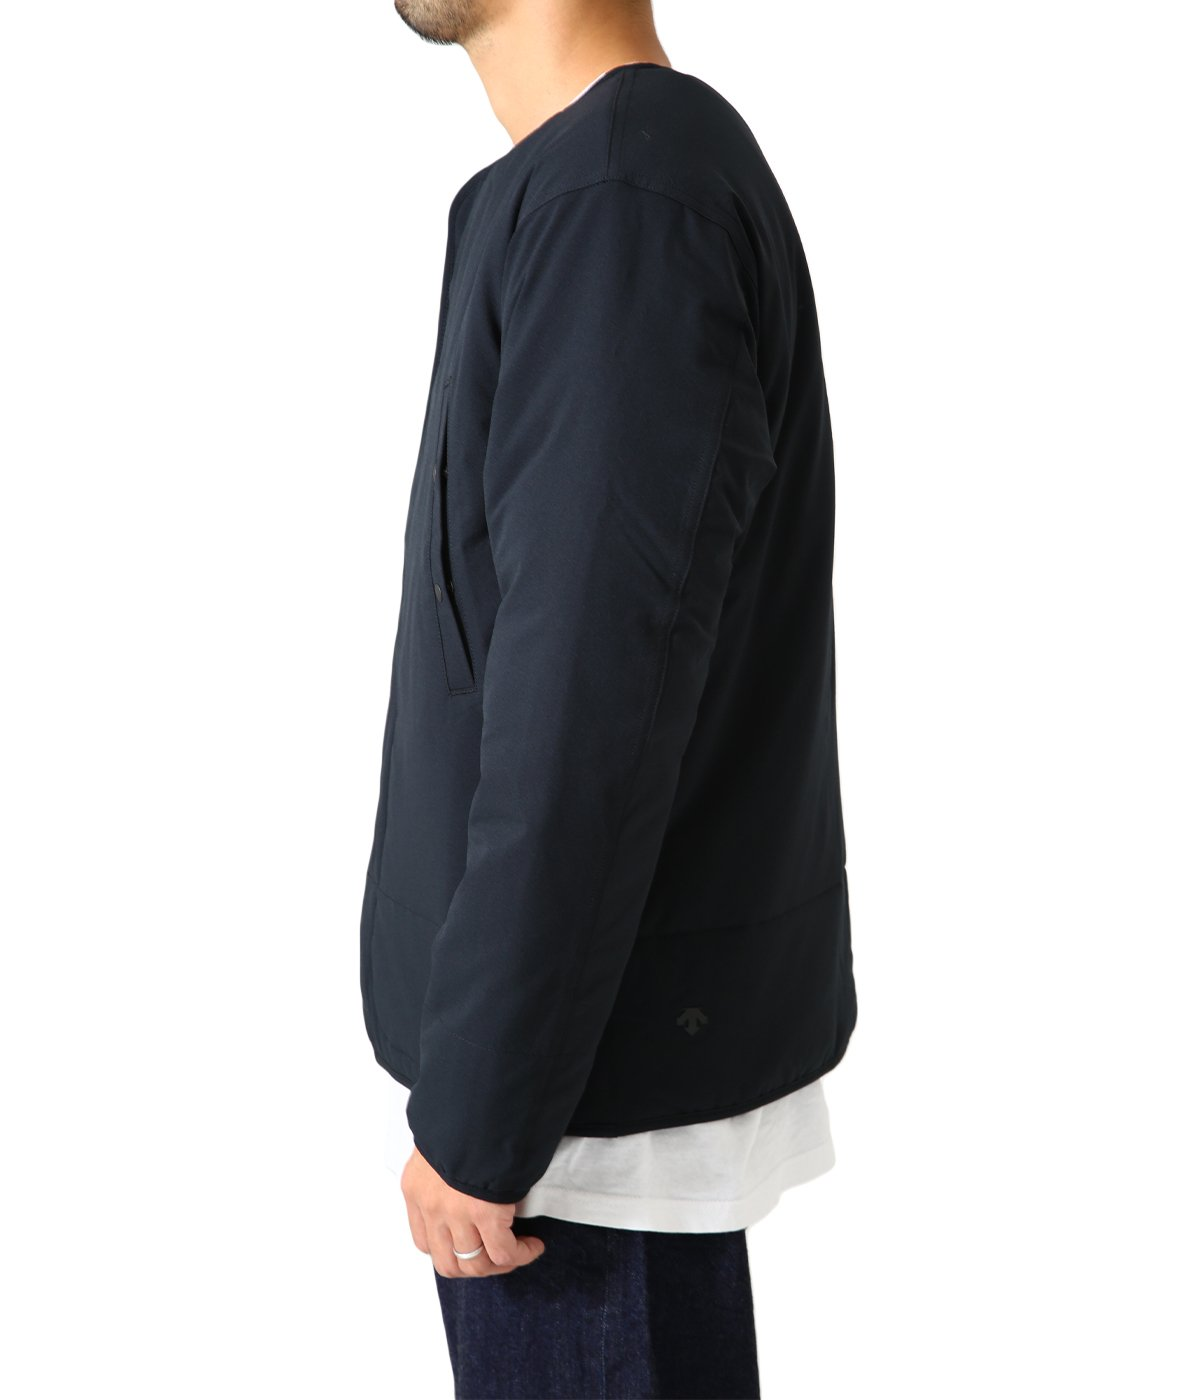 ddd / LIGHT PUFF CARDIGAN JACKET